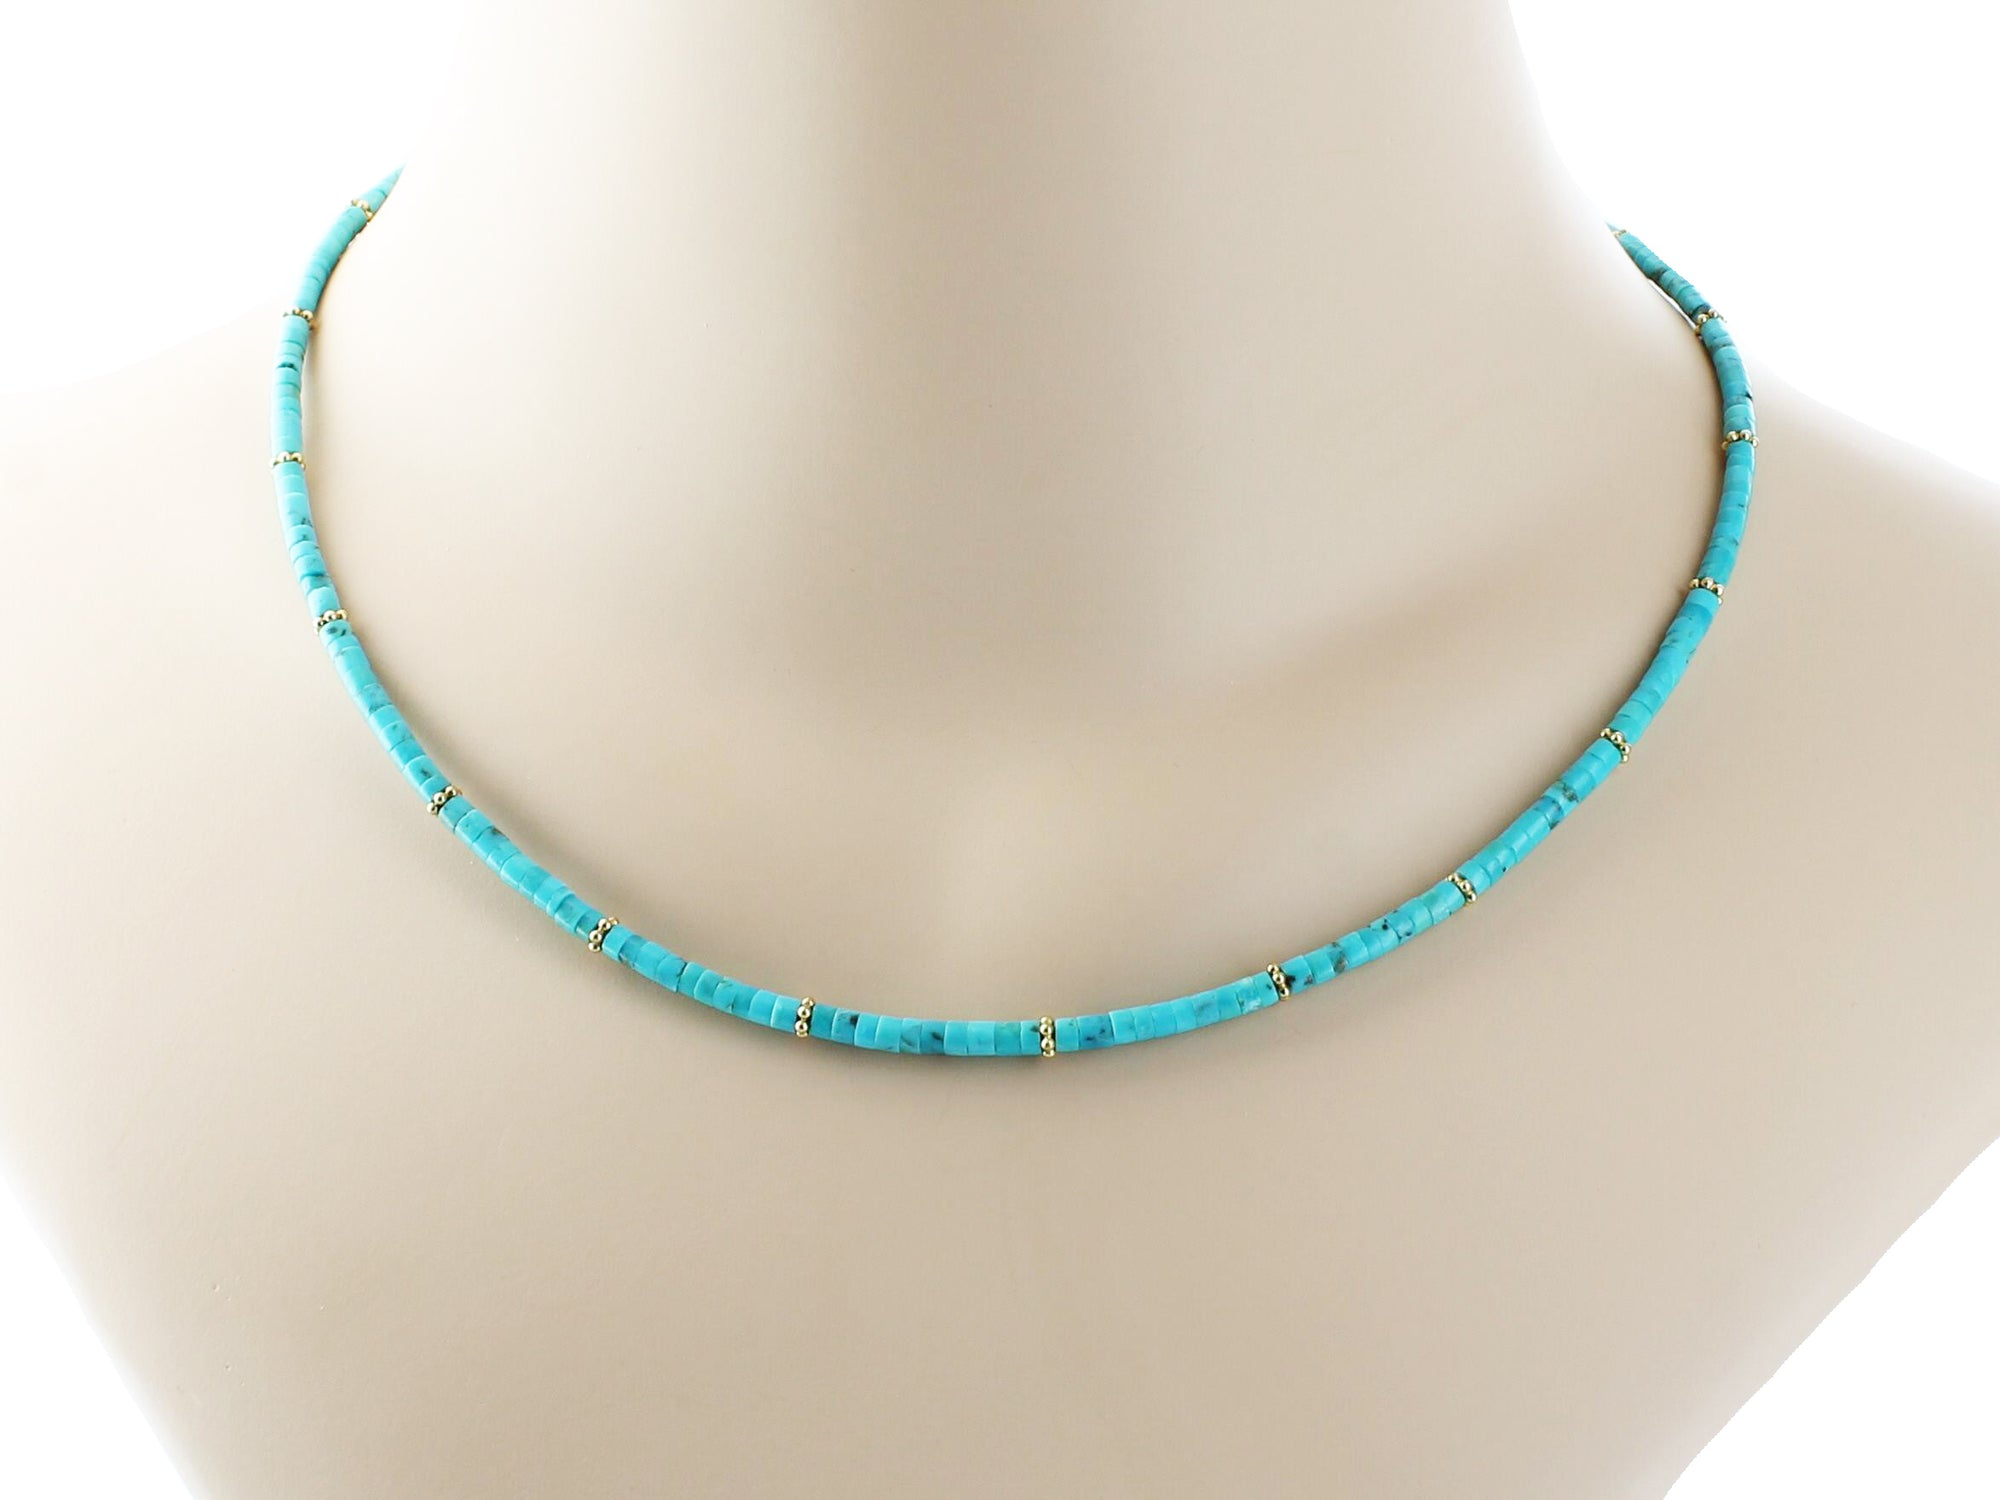 jewelry necklace kingman artist indian pueblo heishi lita atencio by with santo turquoise necklacewith domingo product